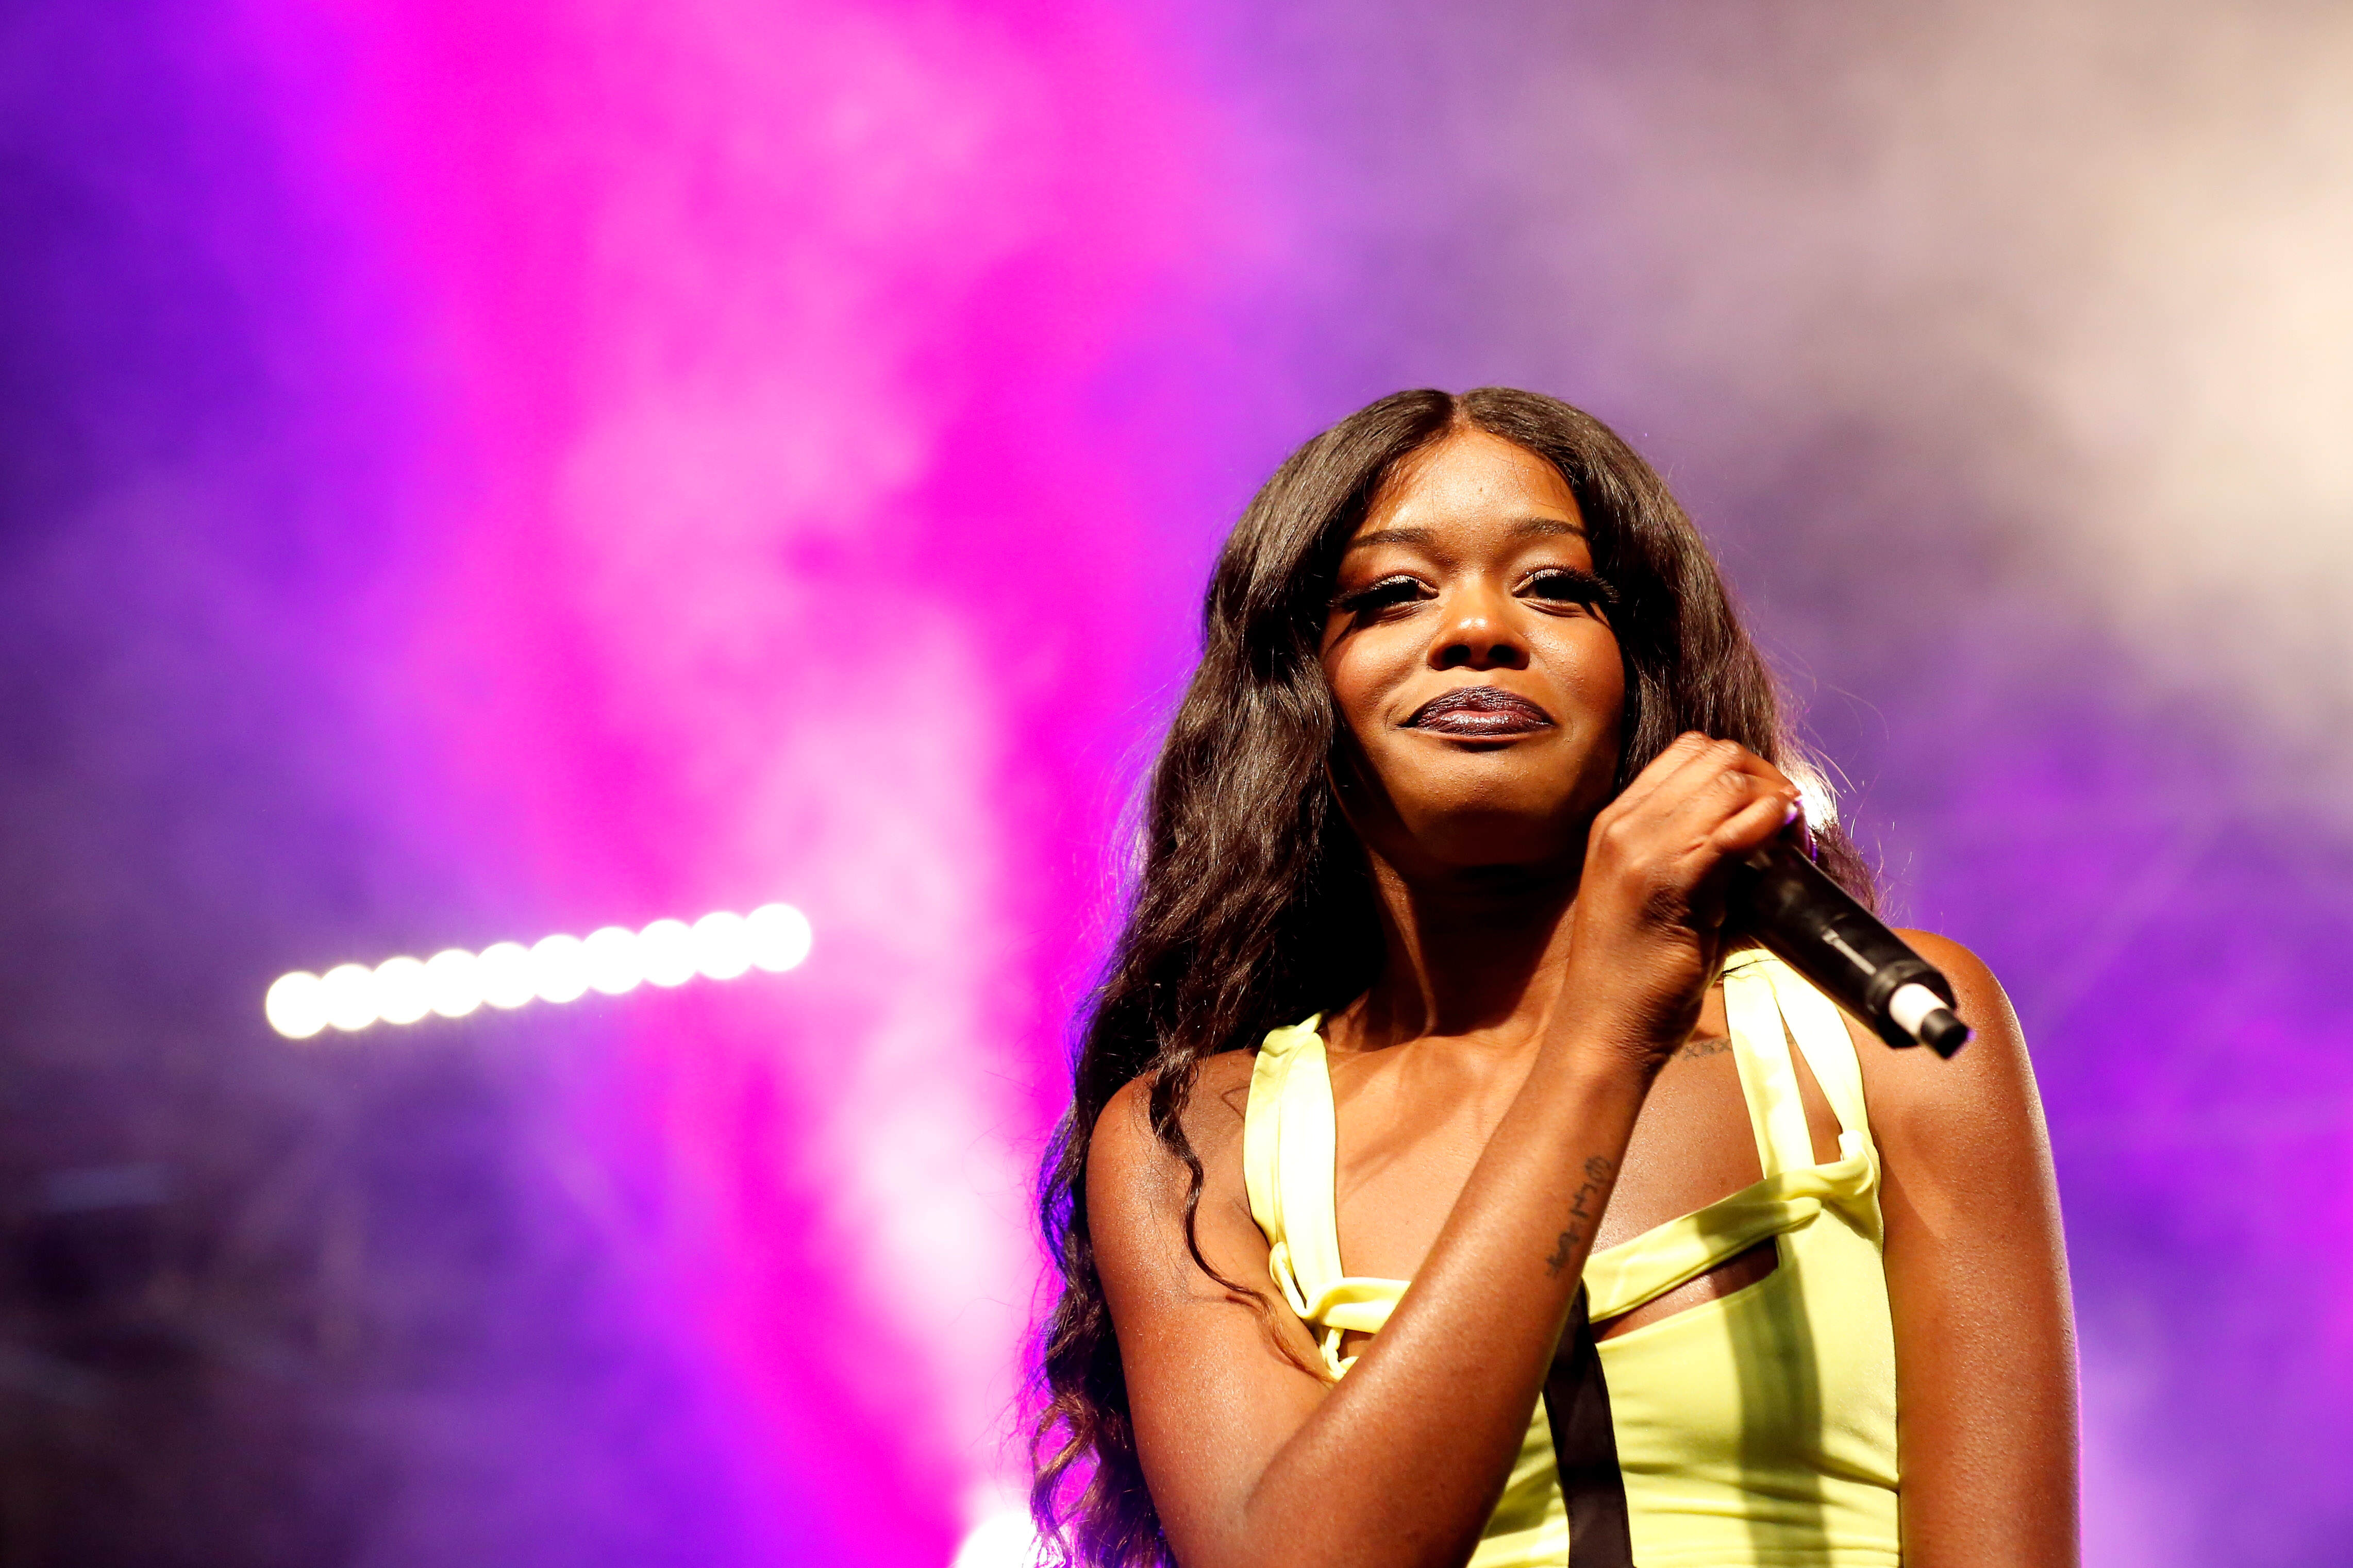 Azealia Banks Went Way Too Far In Disgusting Sarah Palin Twitter Rant GettyImages 150730546